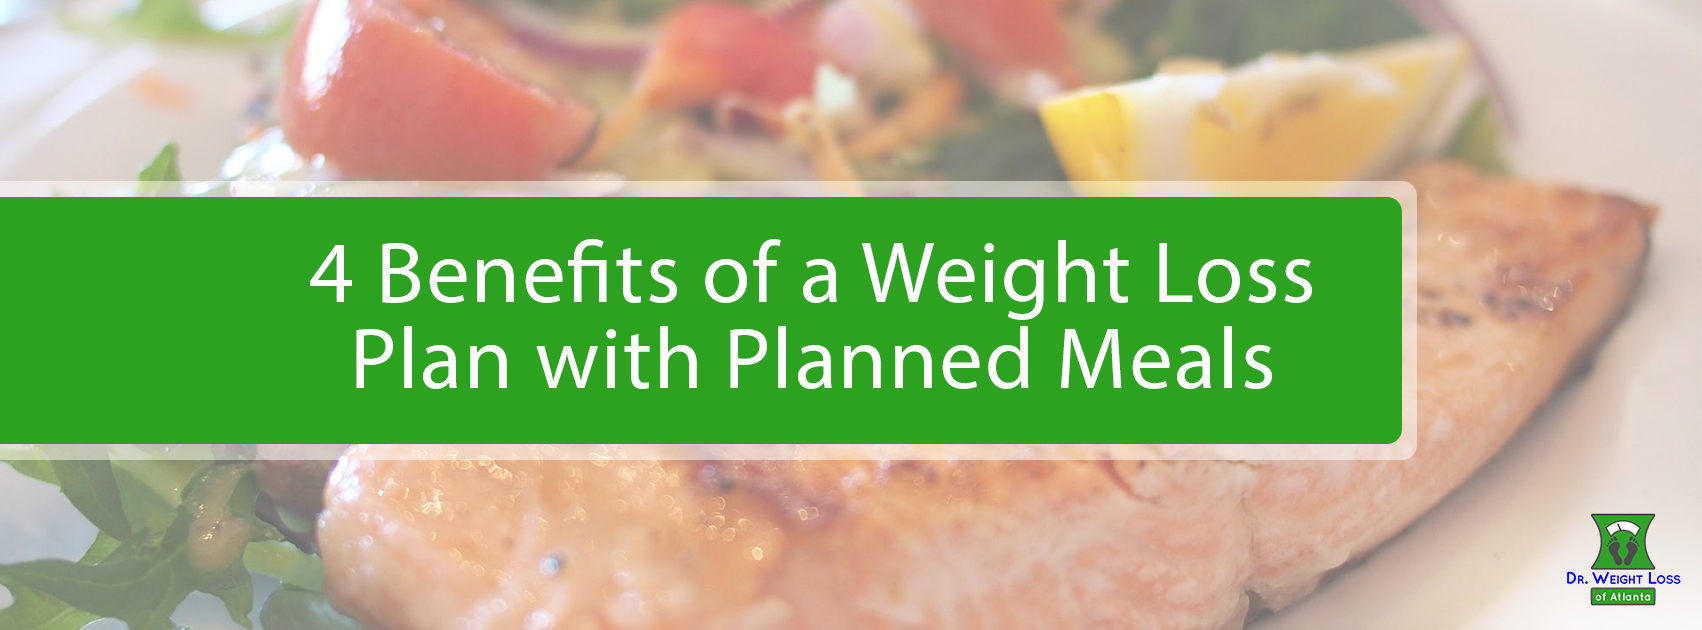 Weight Loss Plan with Planned Meals | Dr. Weight Loss Atl